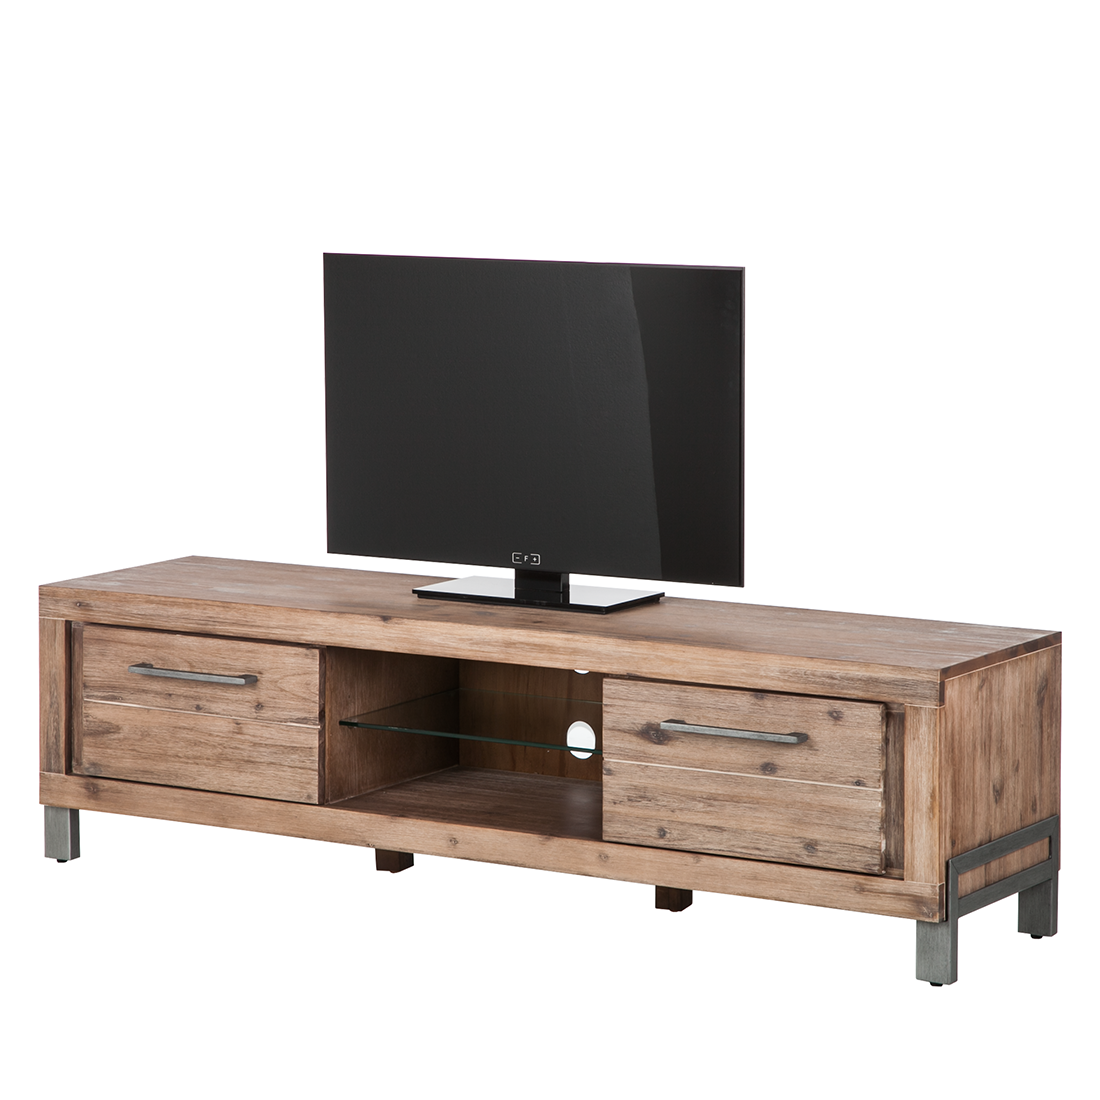 lowboard akazie massivholz grau kommode tv unterschrank schrank fernsehtisch neu ebay. Black Bedroom Furniture Sets. Home Design Ideas